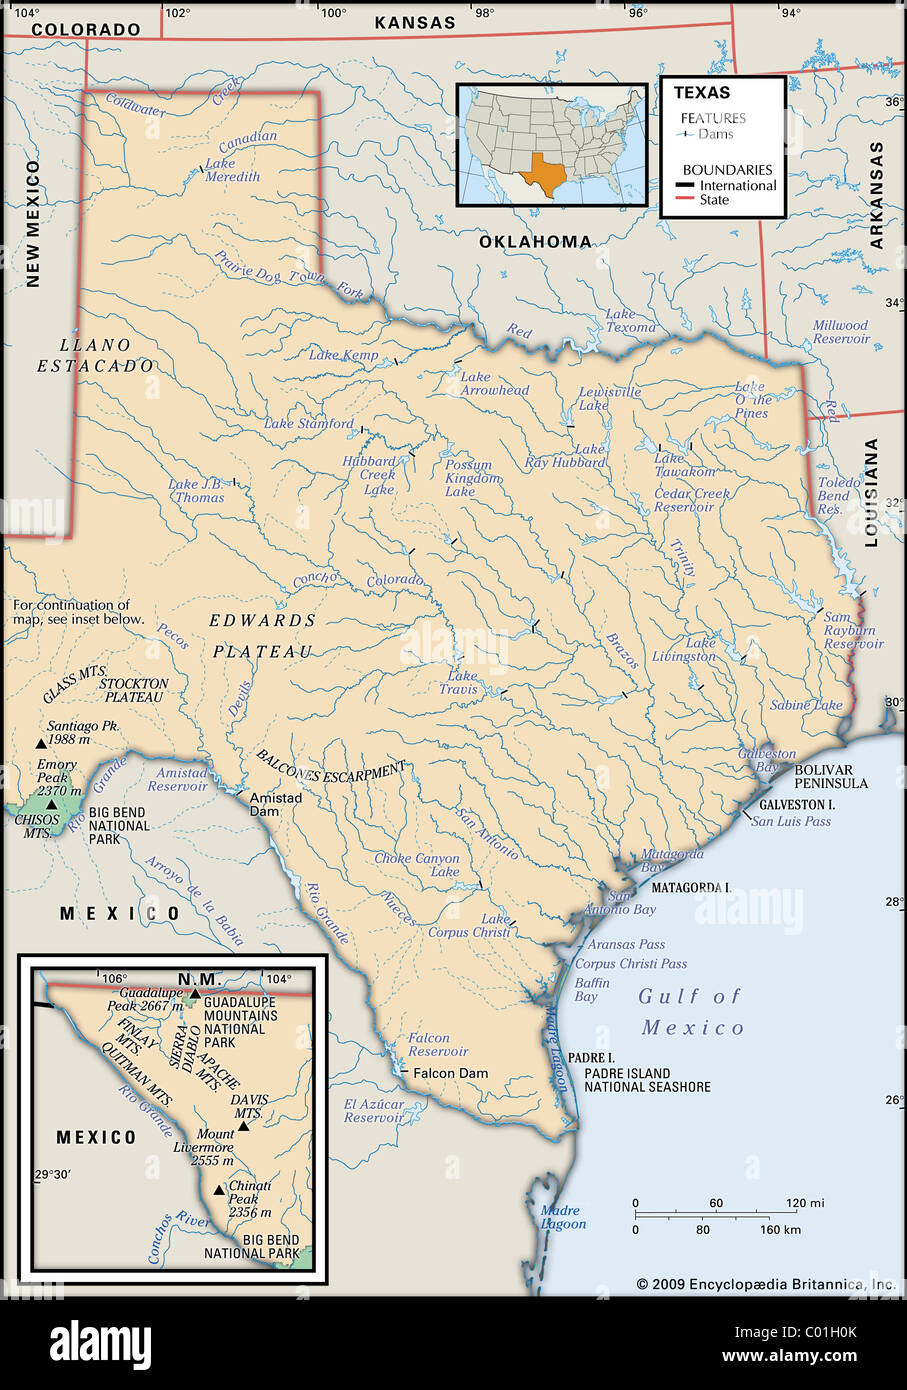 Physical map of Texas Stock Photo: 34456035 - Alamy on elevation map of texas, climate map of texas, most detailed map of texas, landforms of texas, map of austin texas, guadalupe peak texas, rivers of texas, geography of texas, thematic map of texas, all cities in texas, grid map of texas, topographical map of texas, satellite map of texas, road map of texas, region of texas, mountains of texas, product map of texas, political map of texas, flag of texas, relief map of texas,